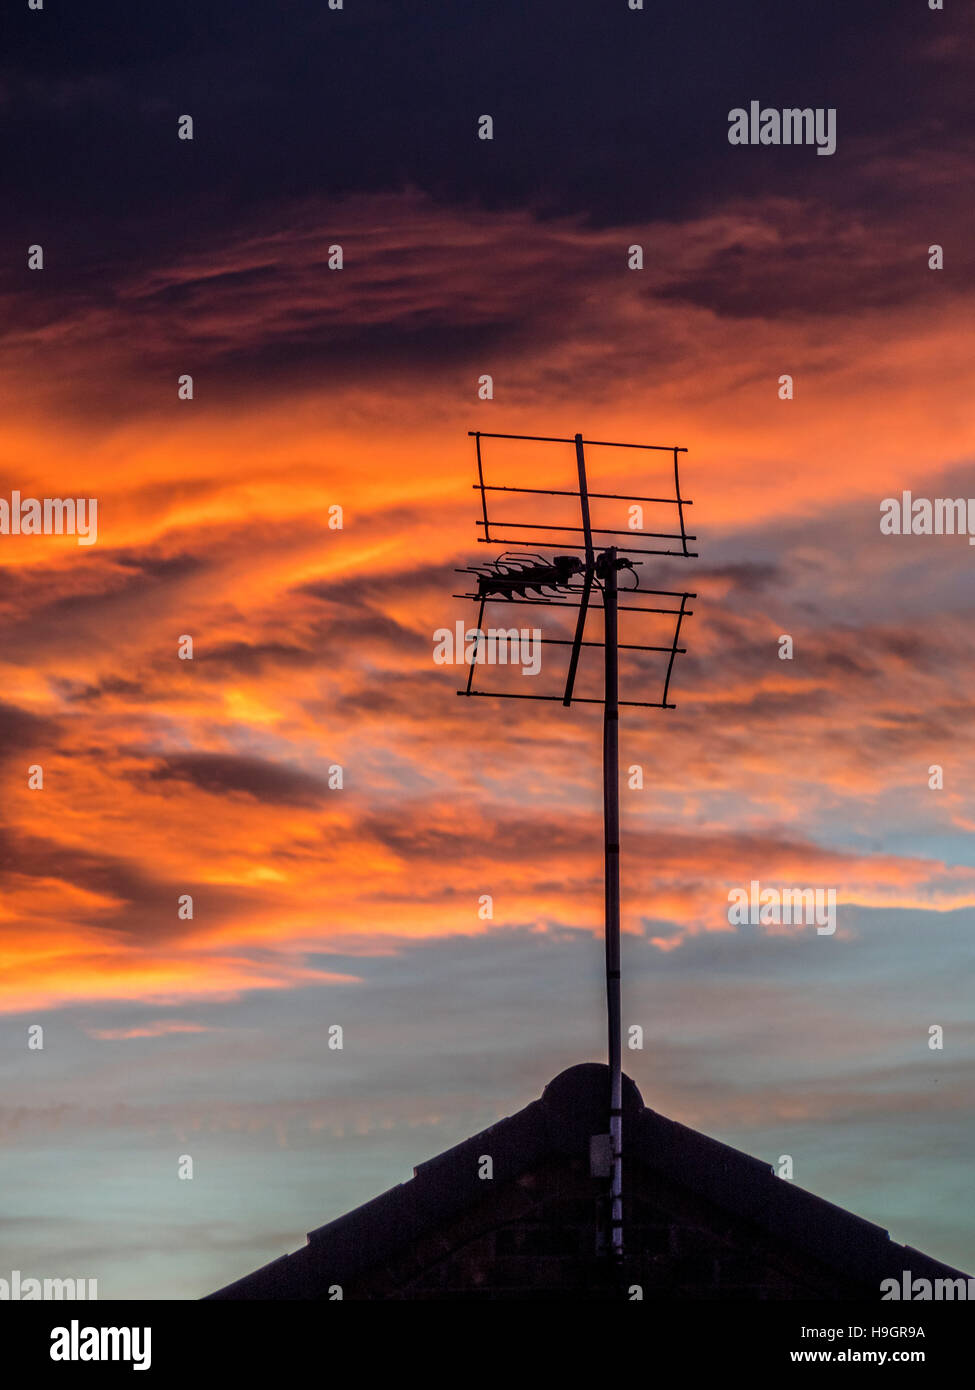 Silhouette of TV aerial and house roof against dramatic sunset - Stock Image